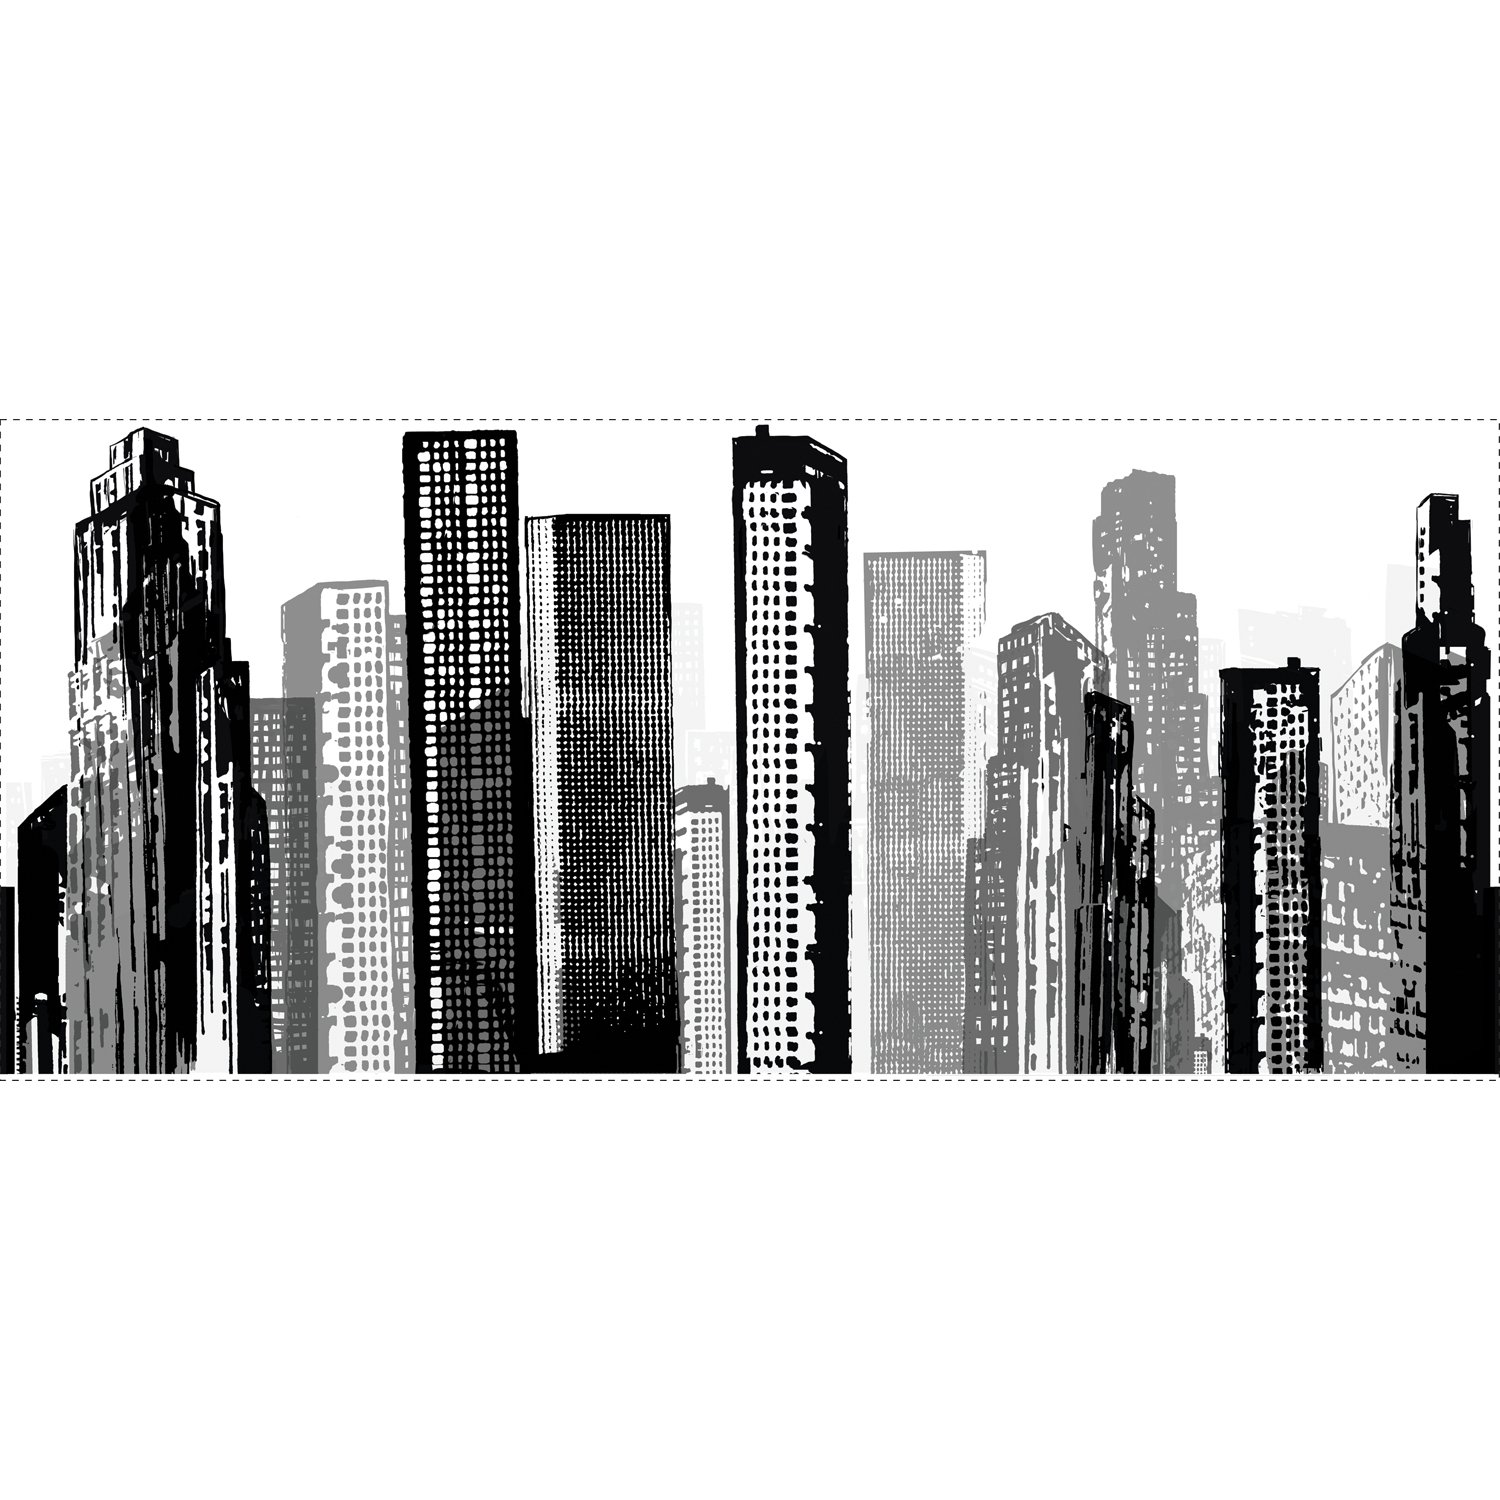 Roommates Rmk1602gm Cityscape Peel And Stick Giant Wall Decal Wall